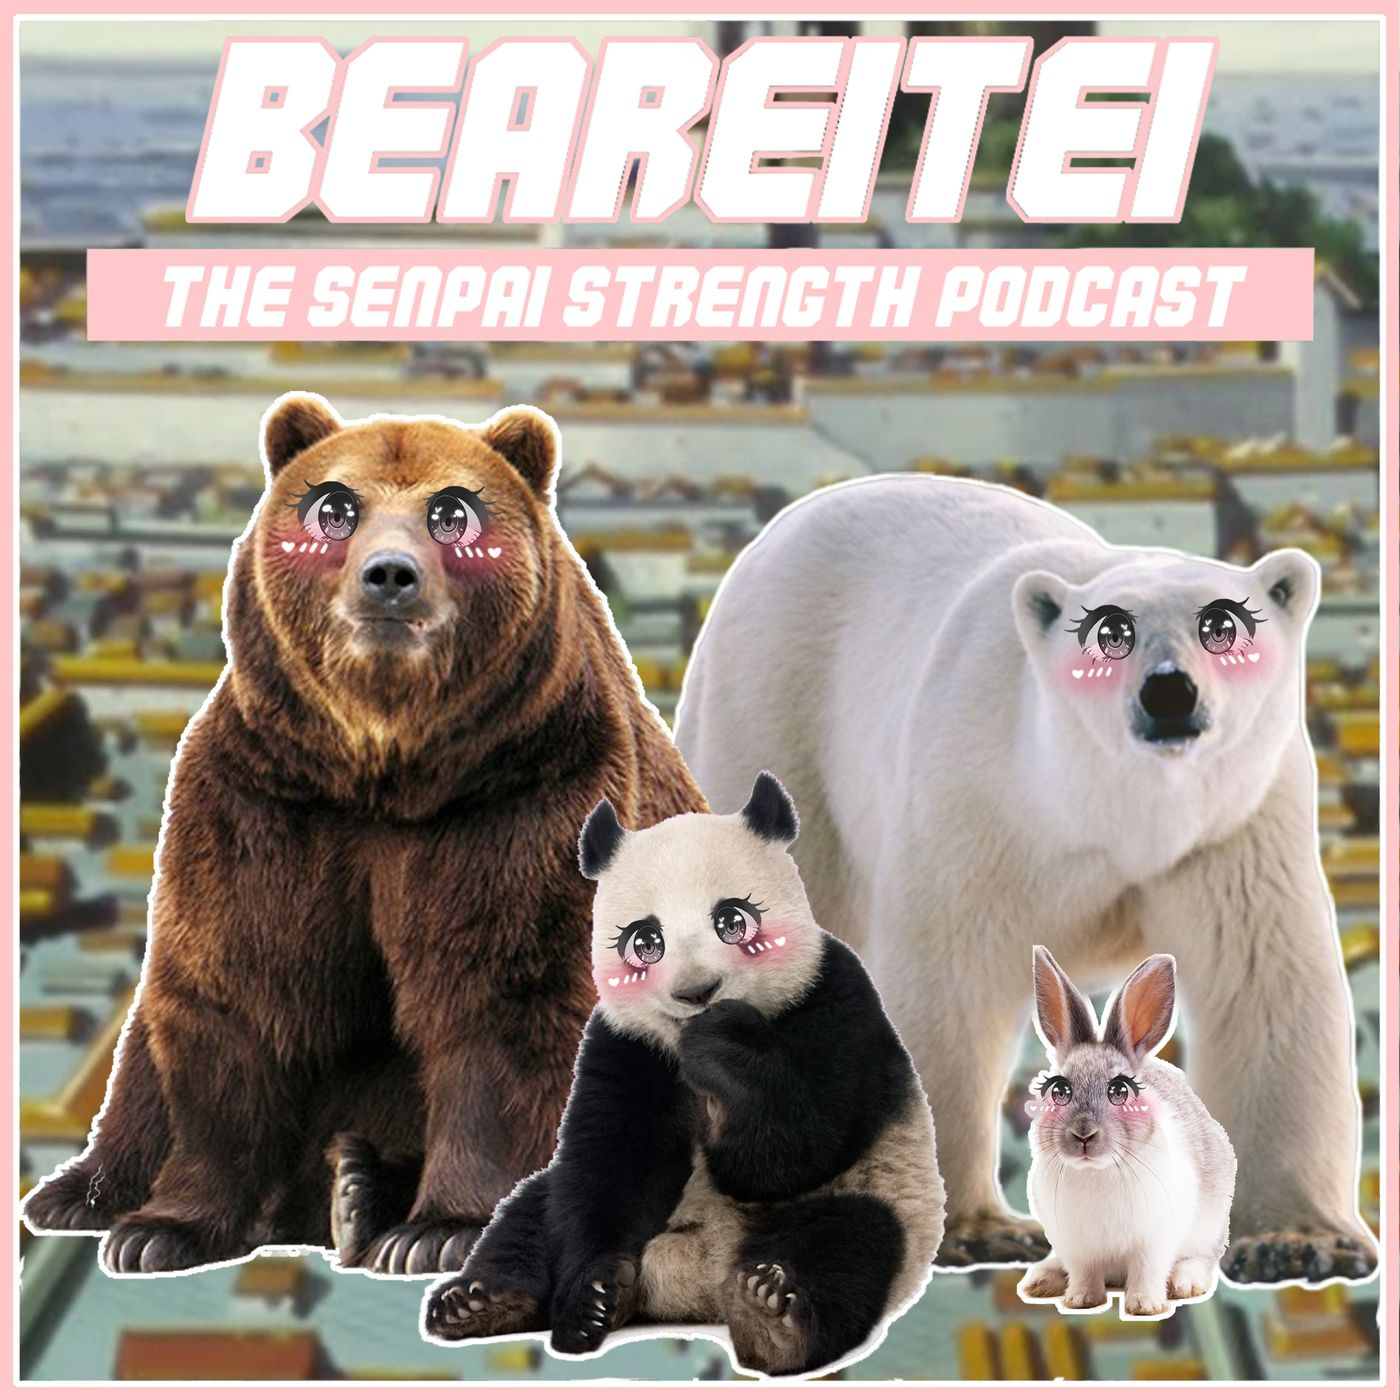 BEAREITEI 05: THE BEARS, THE BUNS, AND THE ICICLE